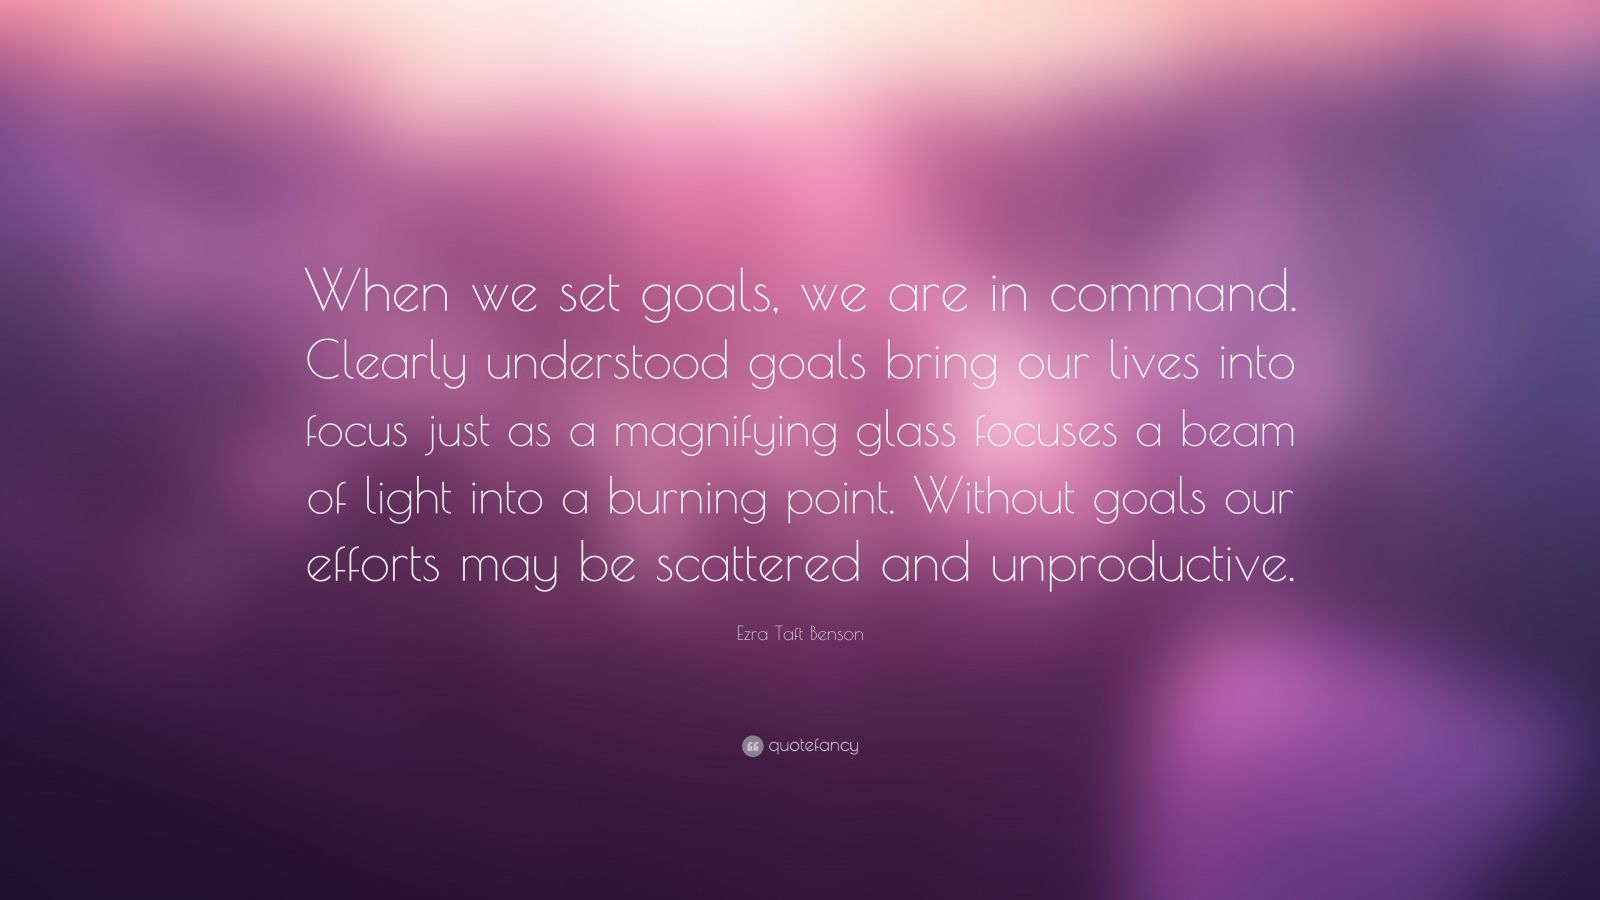 """Ezra Taft Benson Quote: """"When we set goals, we are in command. Clearly understood goals bring our lives into focus just as a magnifying glass focuses a beam of light into a burning point. Without goals our efforts may be scattered and unproductive."""""""